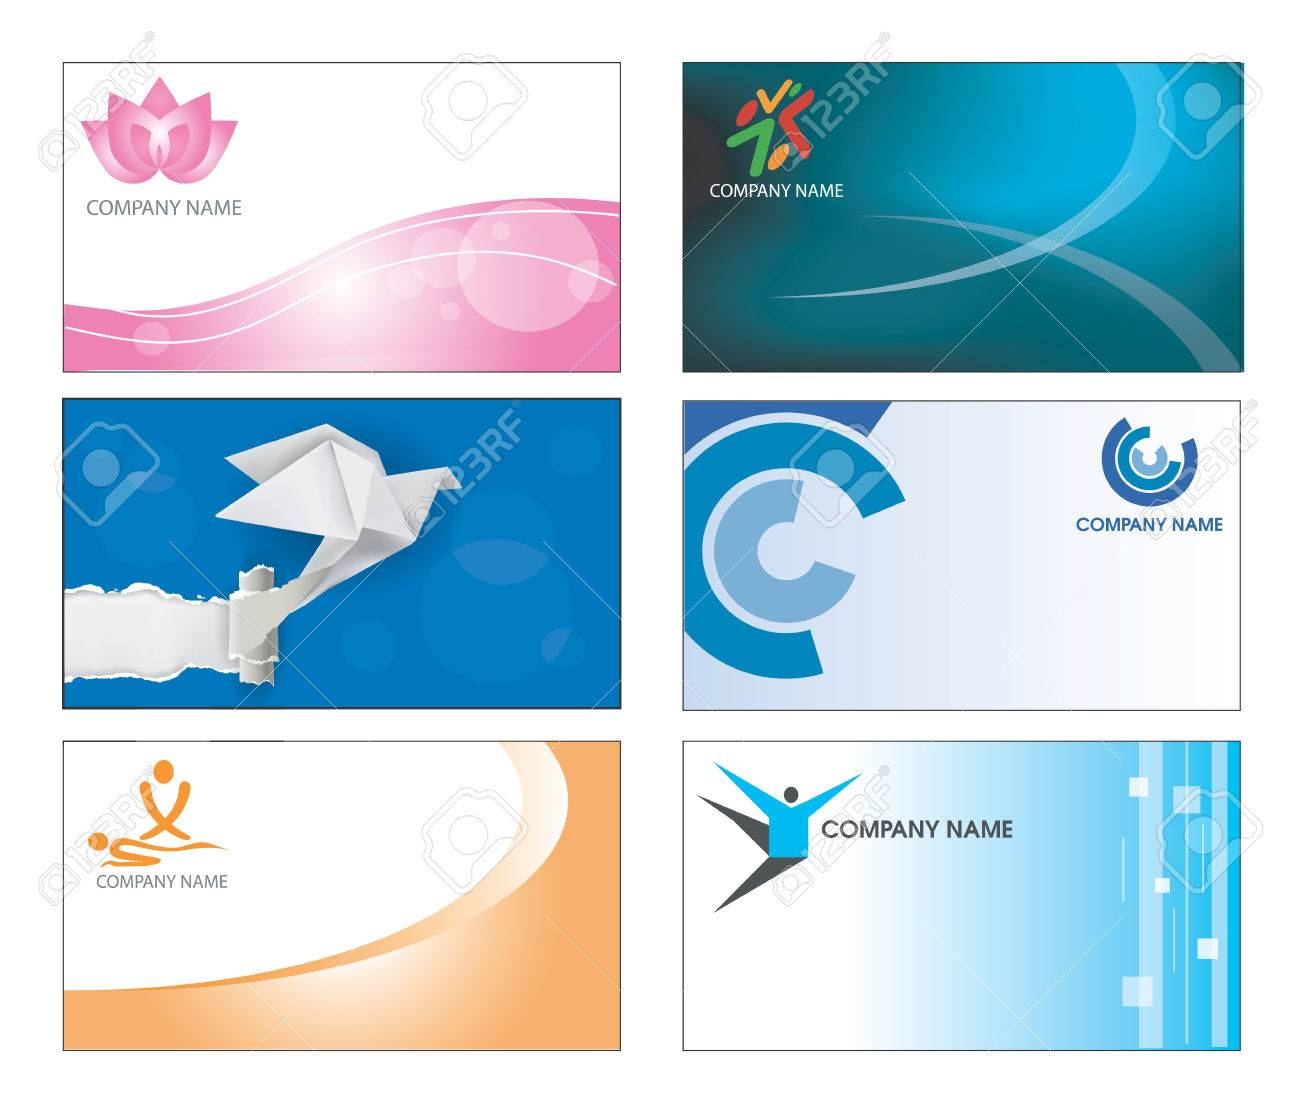 Collection of six corporate business card templates in multicolor collection of six corporate business card templates in multicolor design illustration stock vector 27373921 accmission Image collections